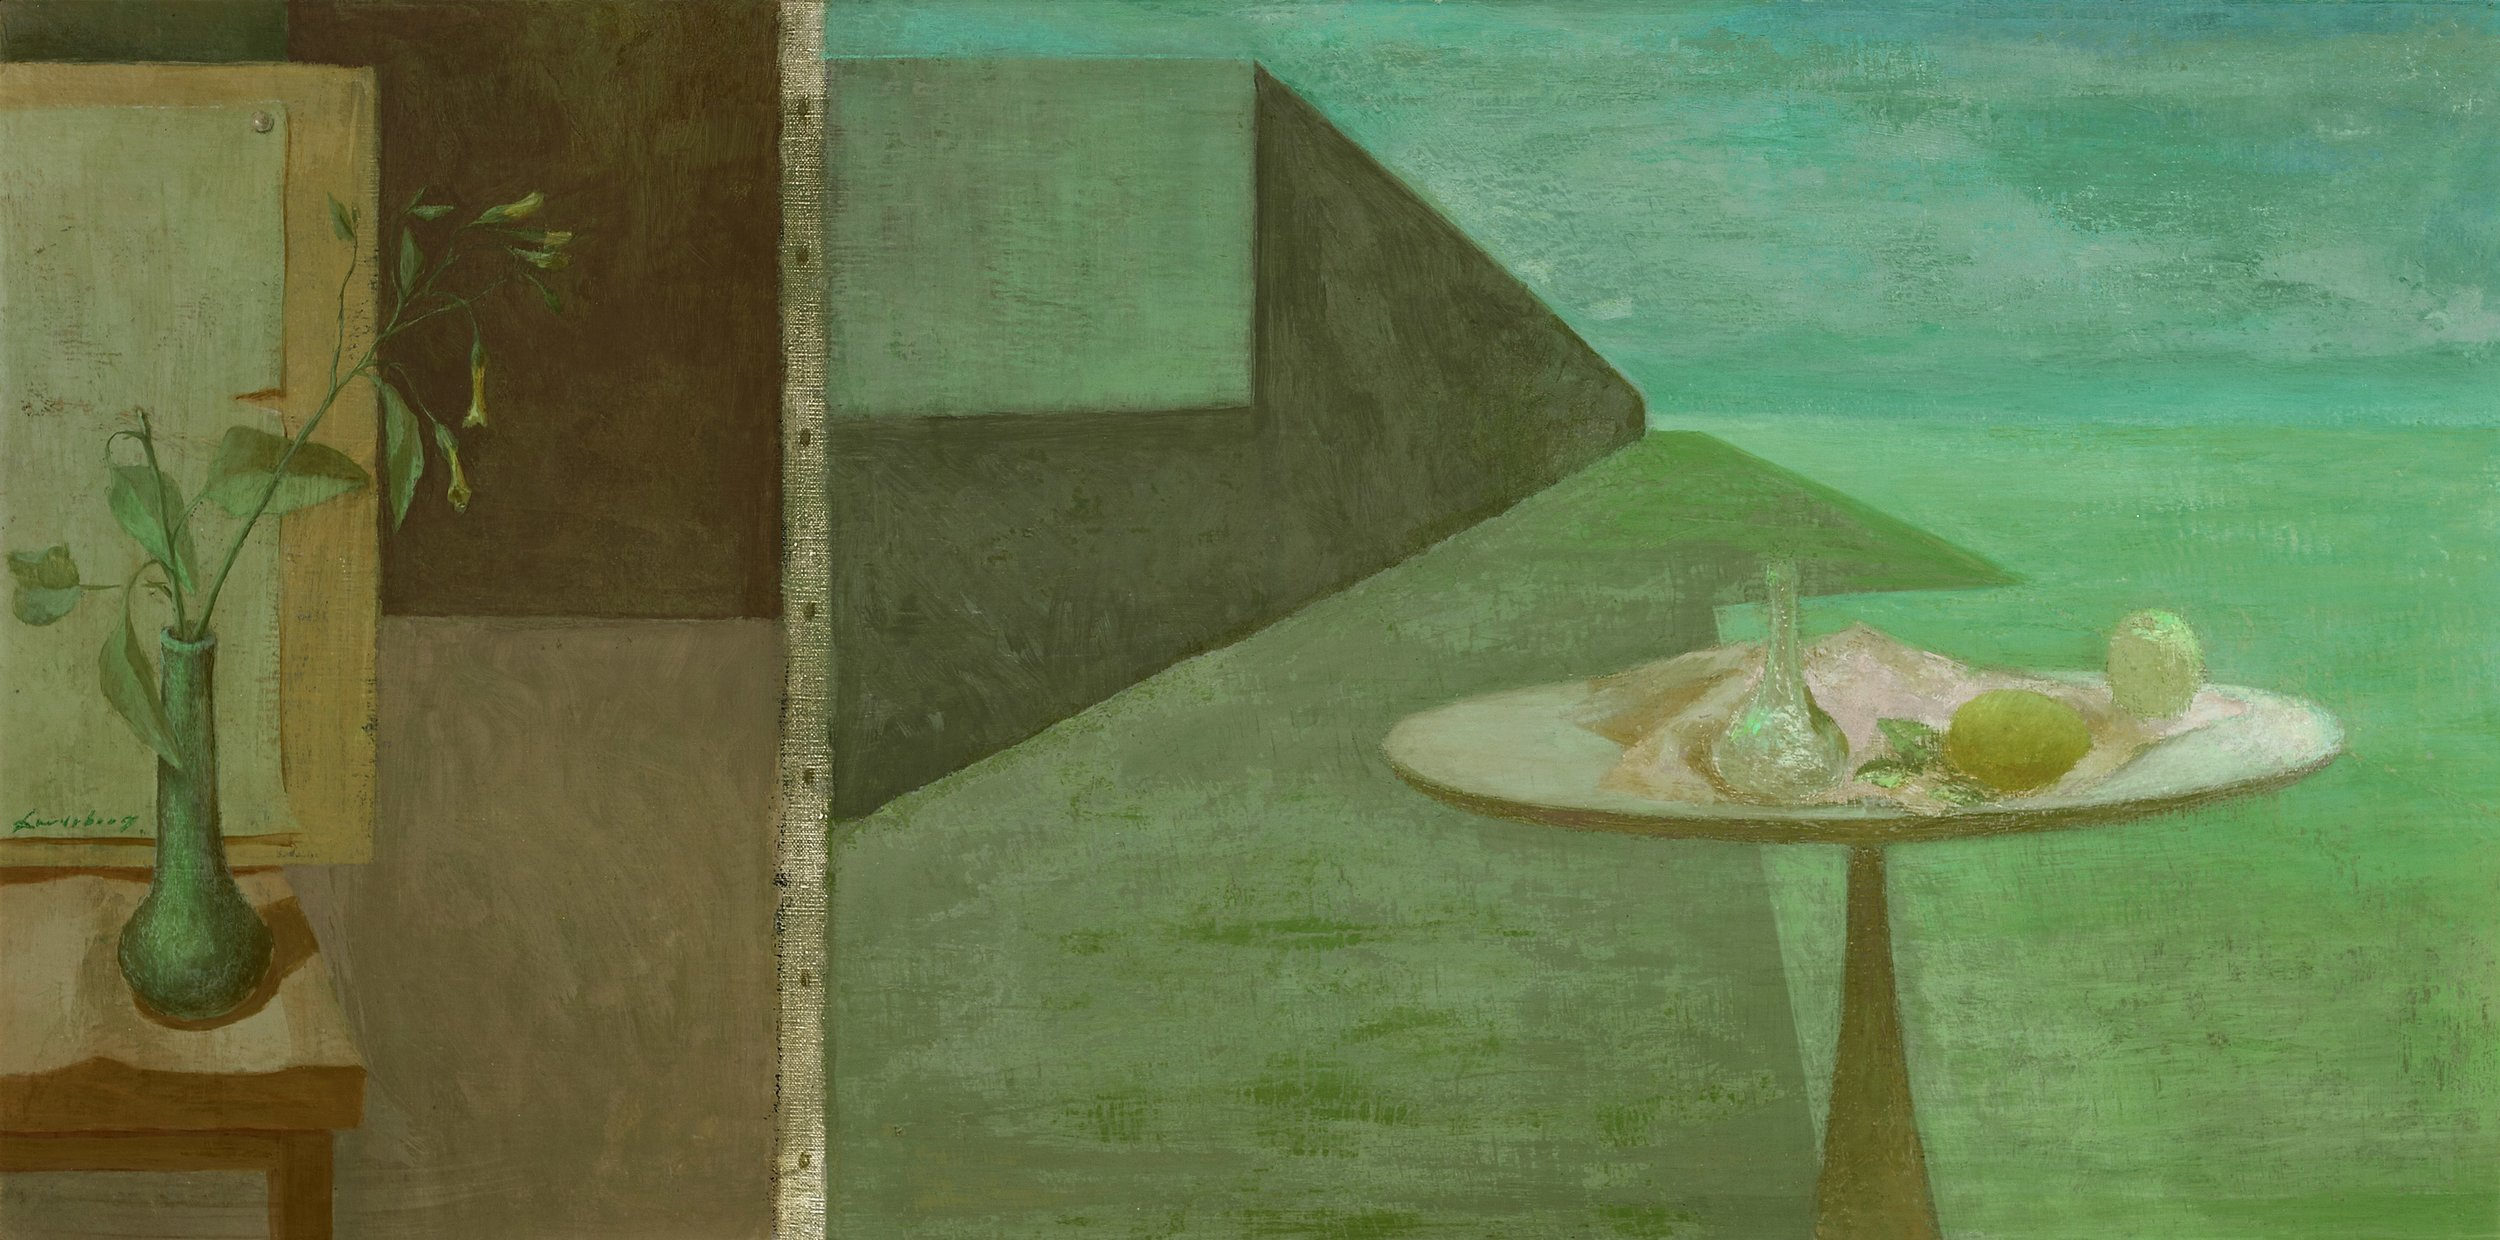 Helen Lundeberg (1908-1999)   Enigma of Reality , 1955  oil on canvas 20 x 40 inches; 50.8 x 101.6 centimeters